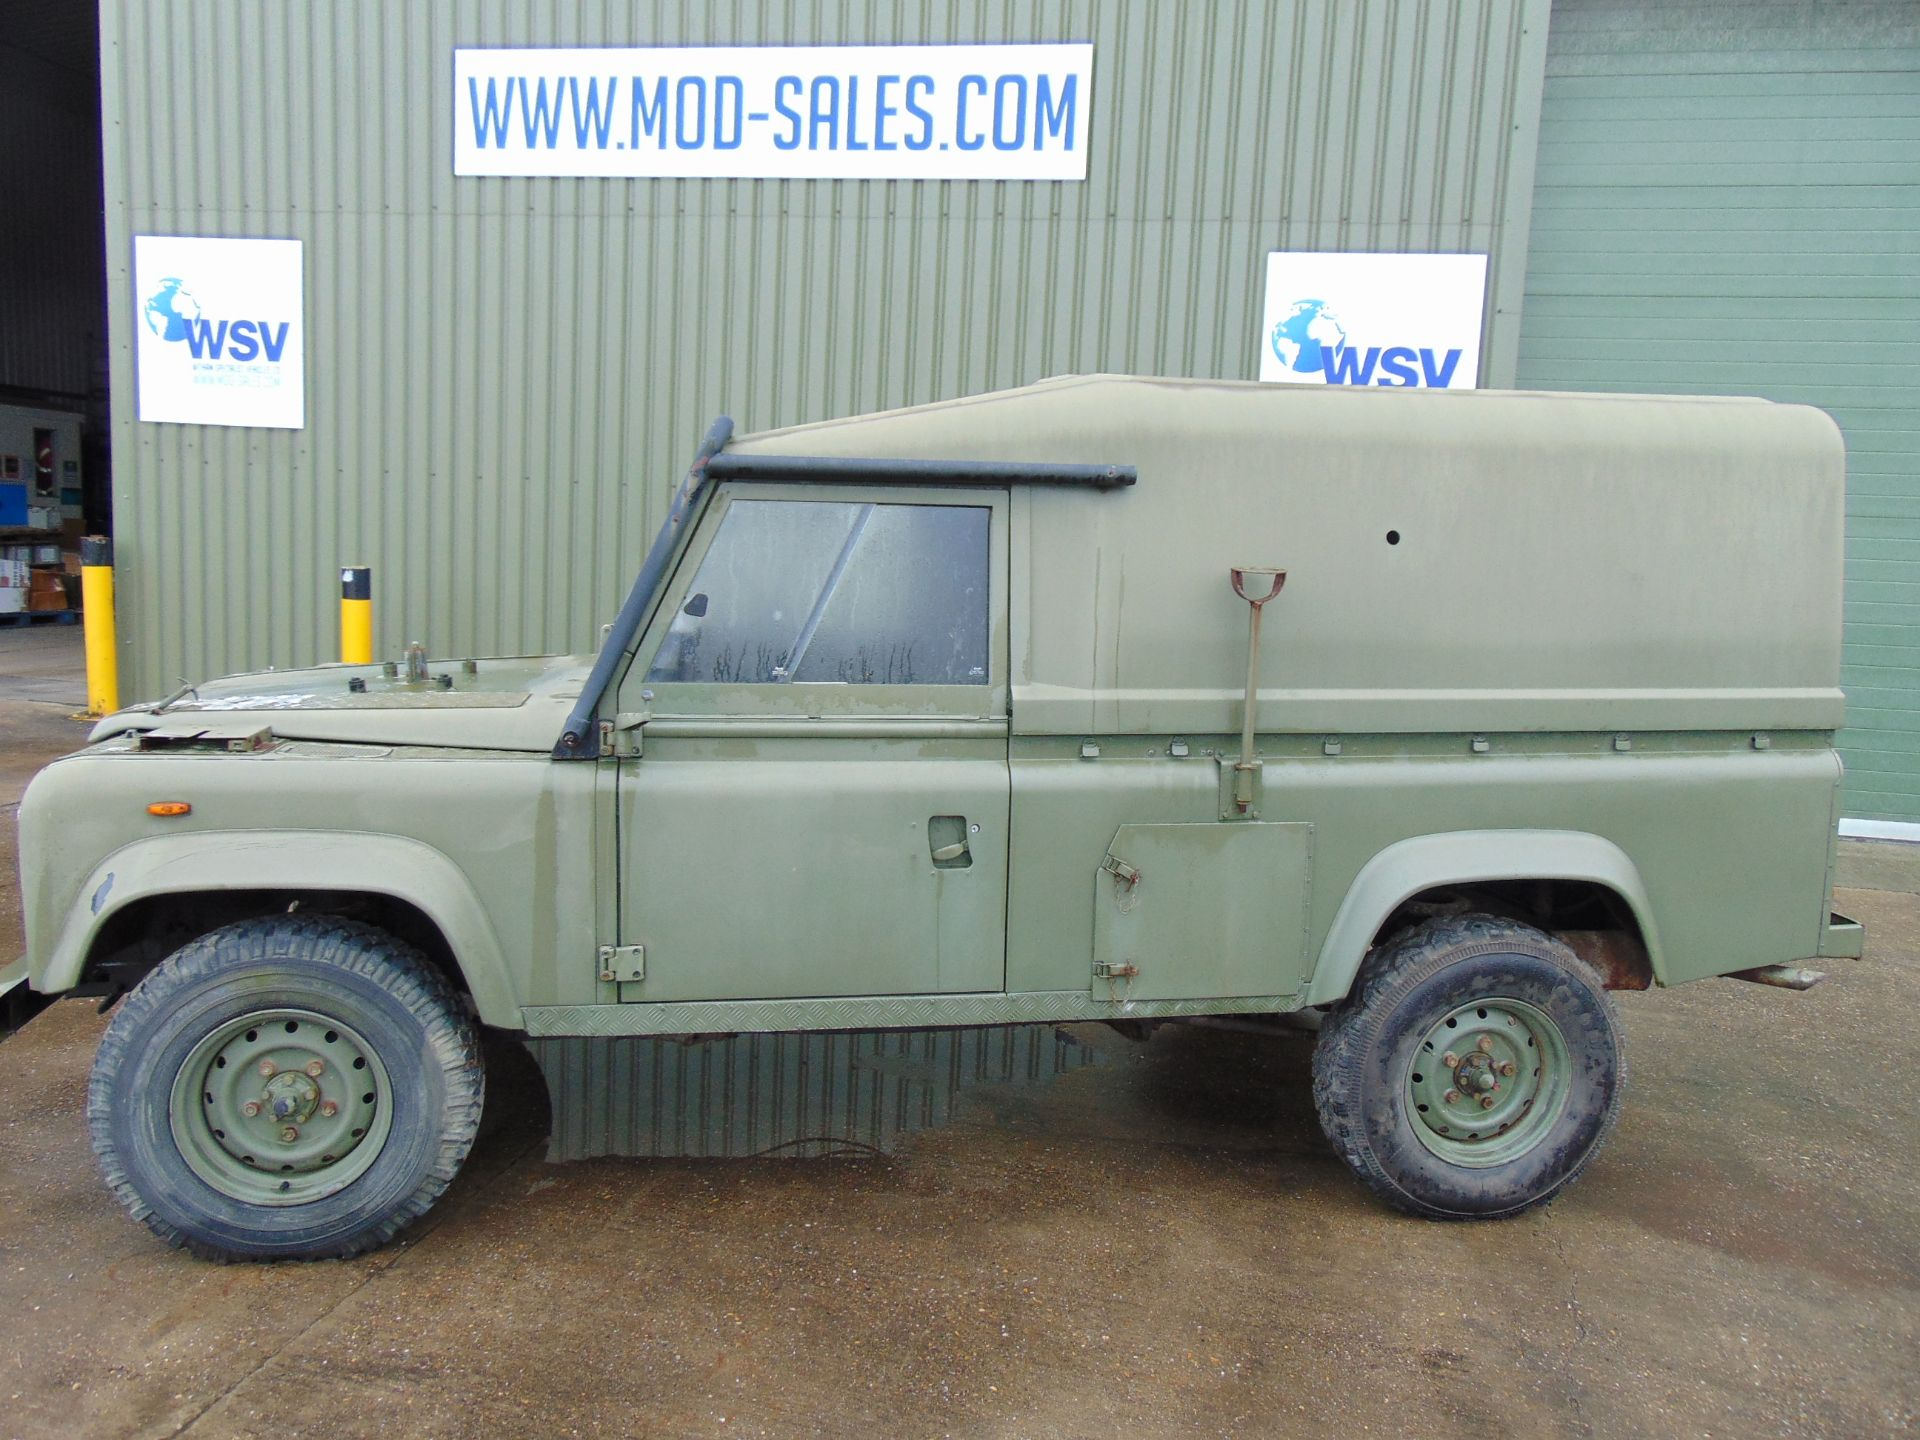 Lotto 26437 - Land Rover TITHONUS 110 Hard Top